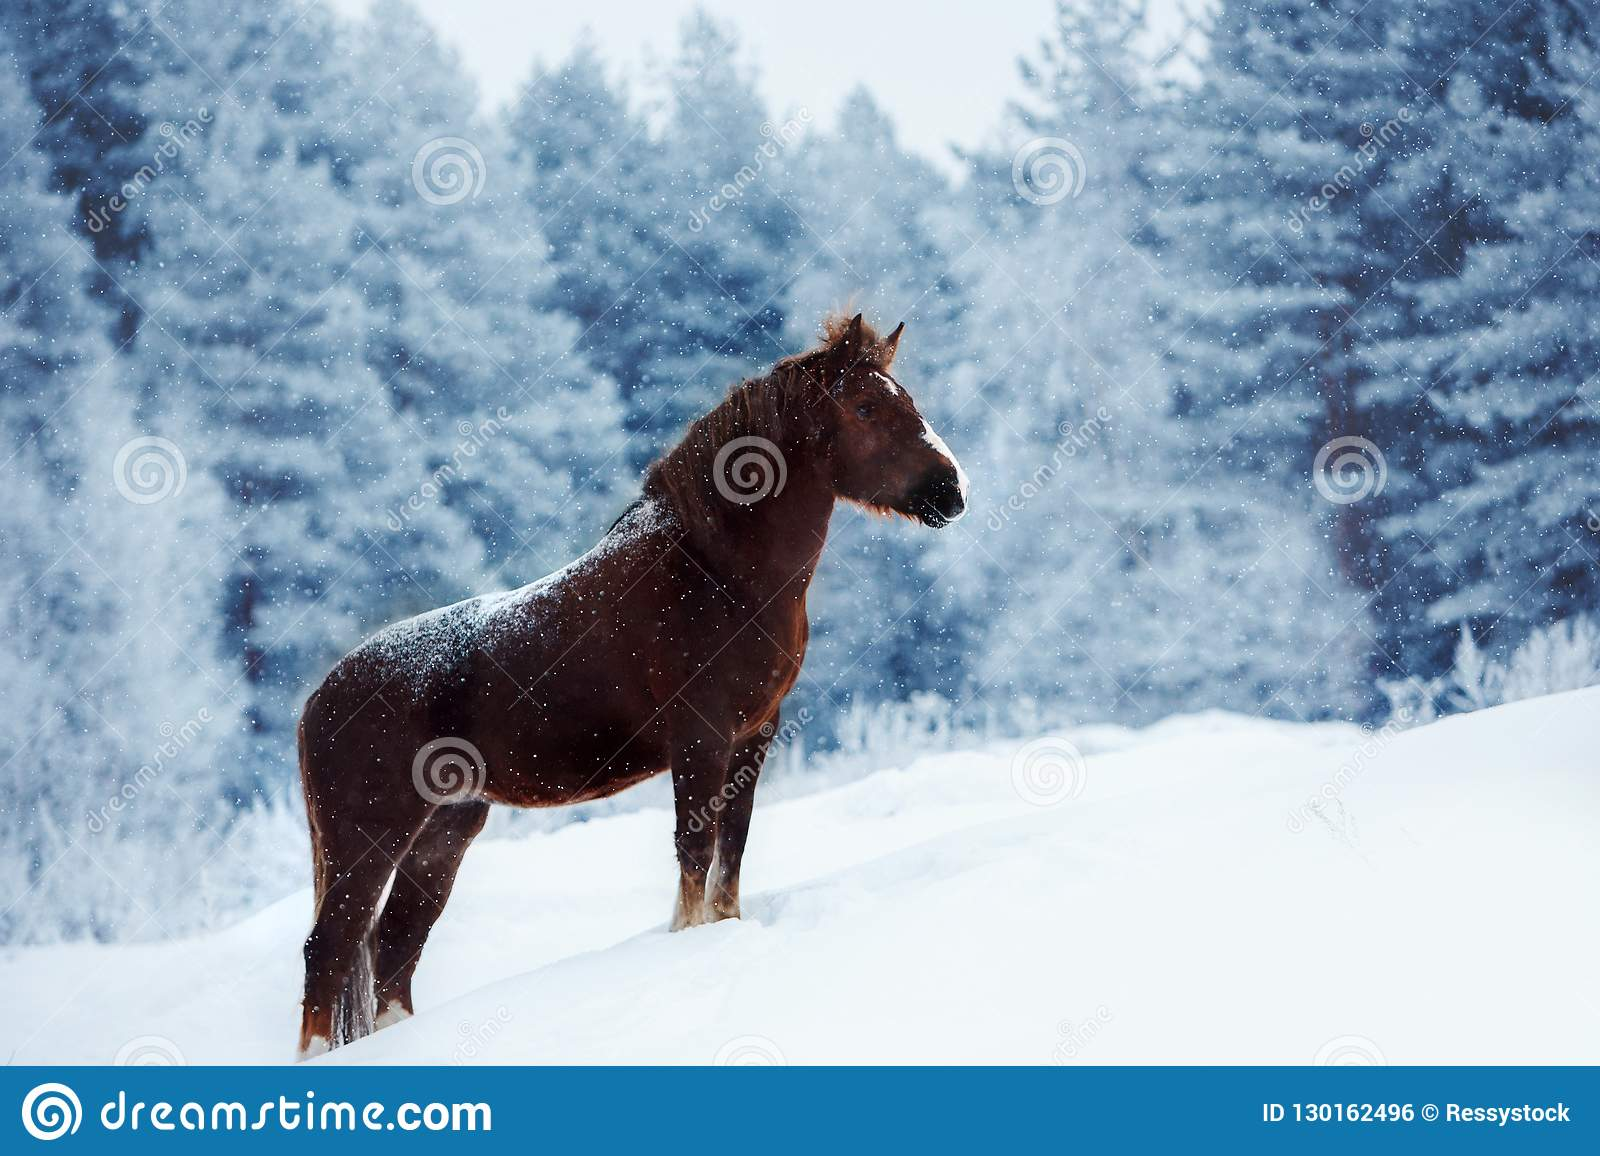 Clydesdale Horse Staing On A Snowy Field In Winter Stock Photo Image Of Animal Gallop 130162496